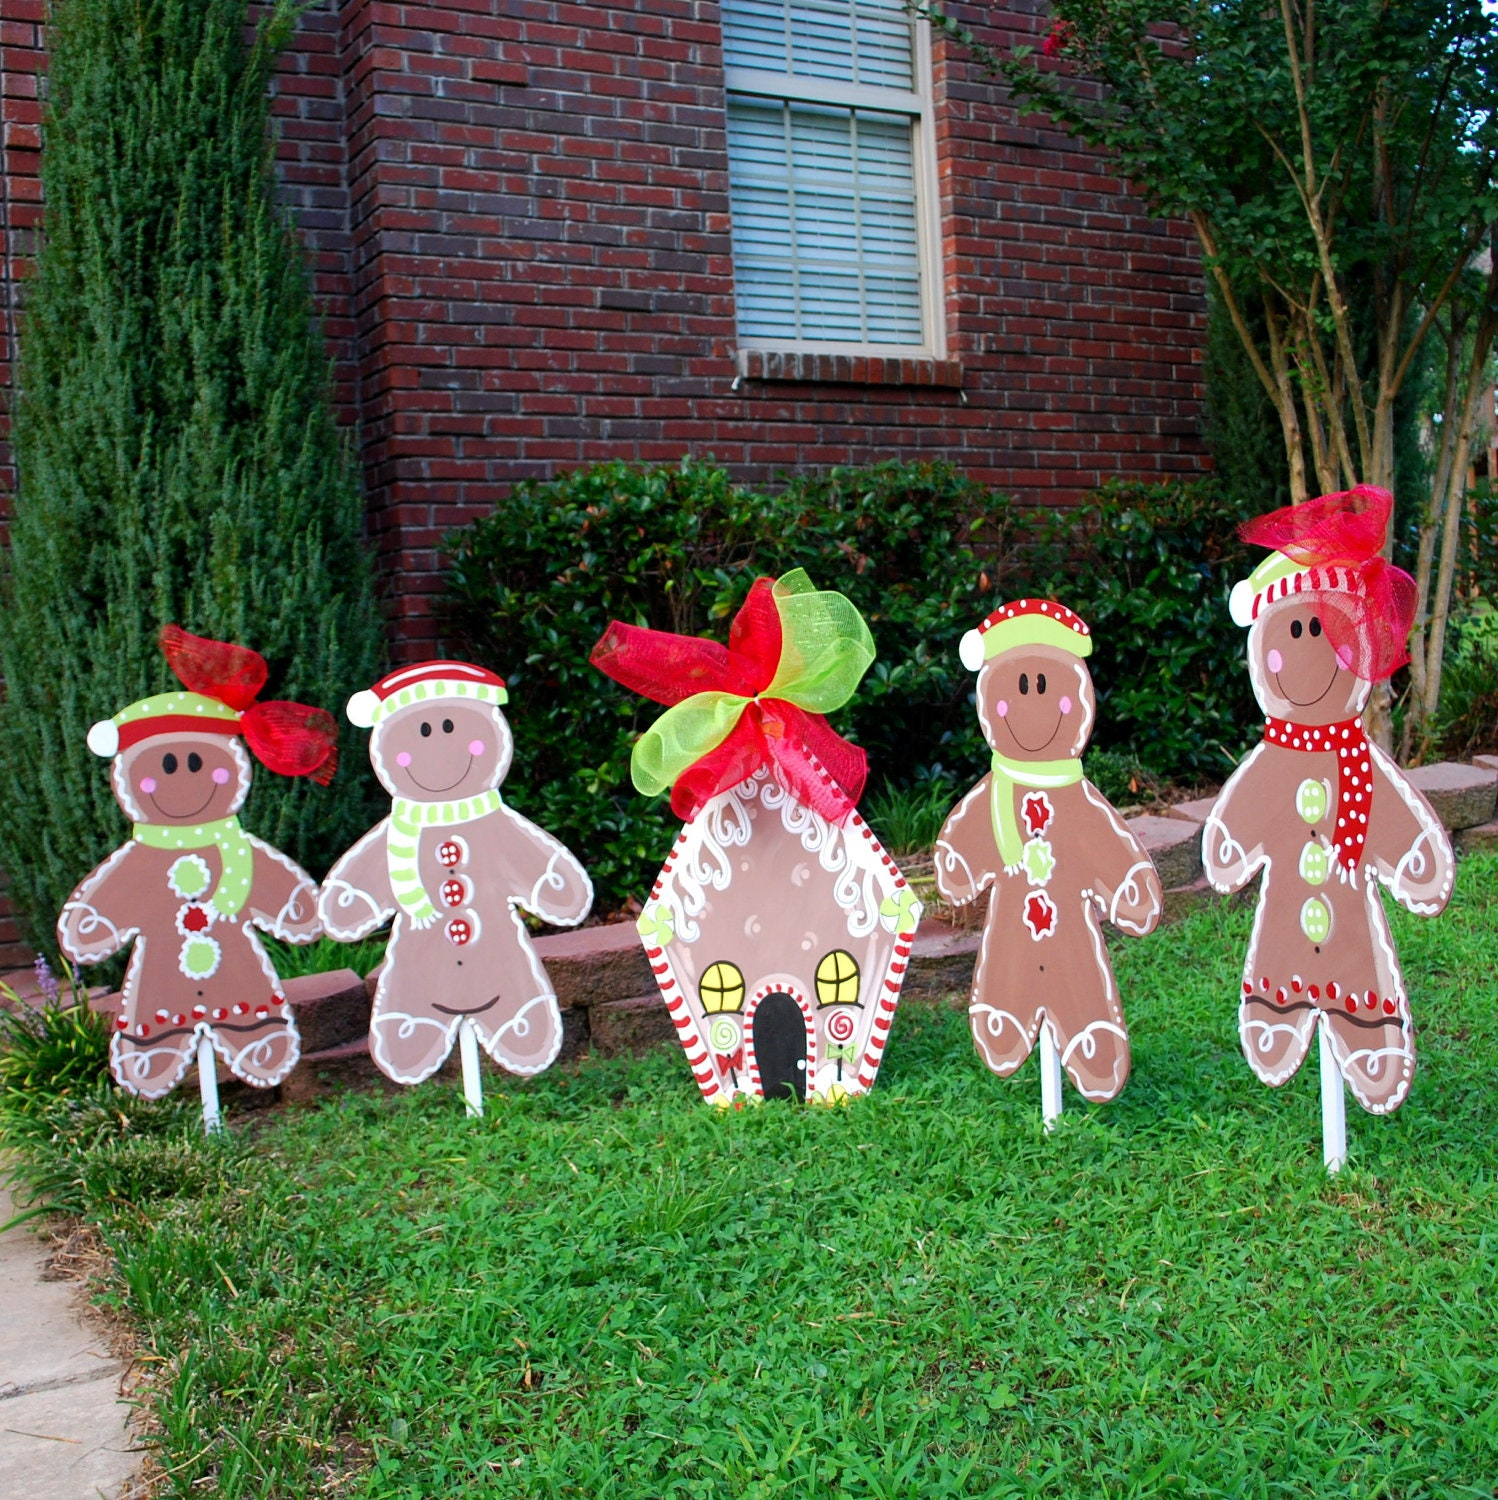 Christmas Yard Decor Gingerbread Man Christmas Decor. Christmas Decoration Stores In Jacksonville Fl. Christmas Decorations In Kmart. Large Christmas Decorations Uk. Decorate Christmas Front Door. Pinterest Christmas Decorations Tutorials. Christmas Decorating Ideas For Verandahs. Buy Christmas Decorations Sydney. Easy Table Decorations For Christmas To Make